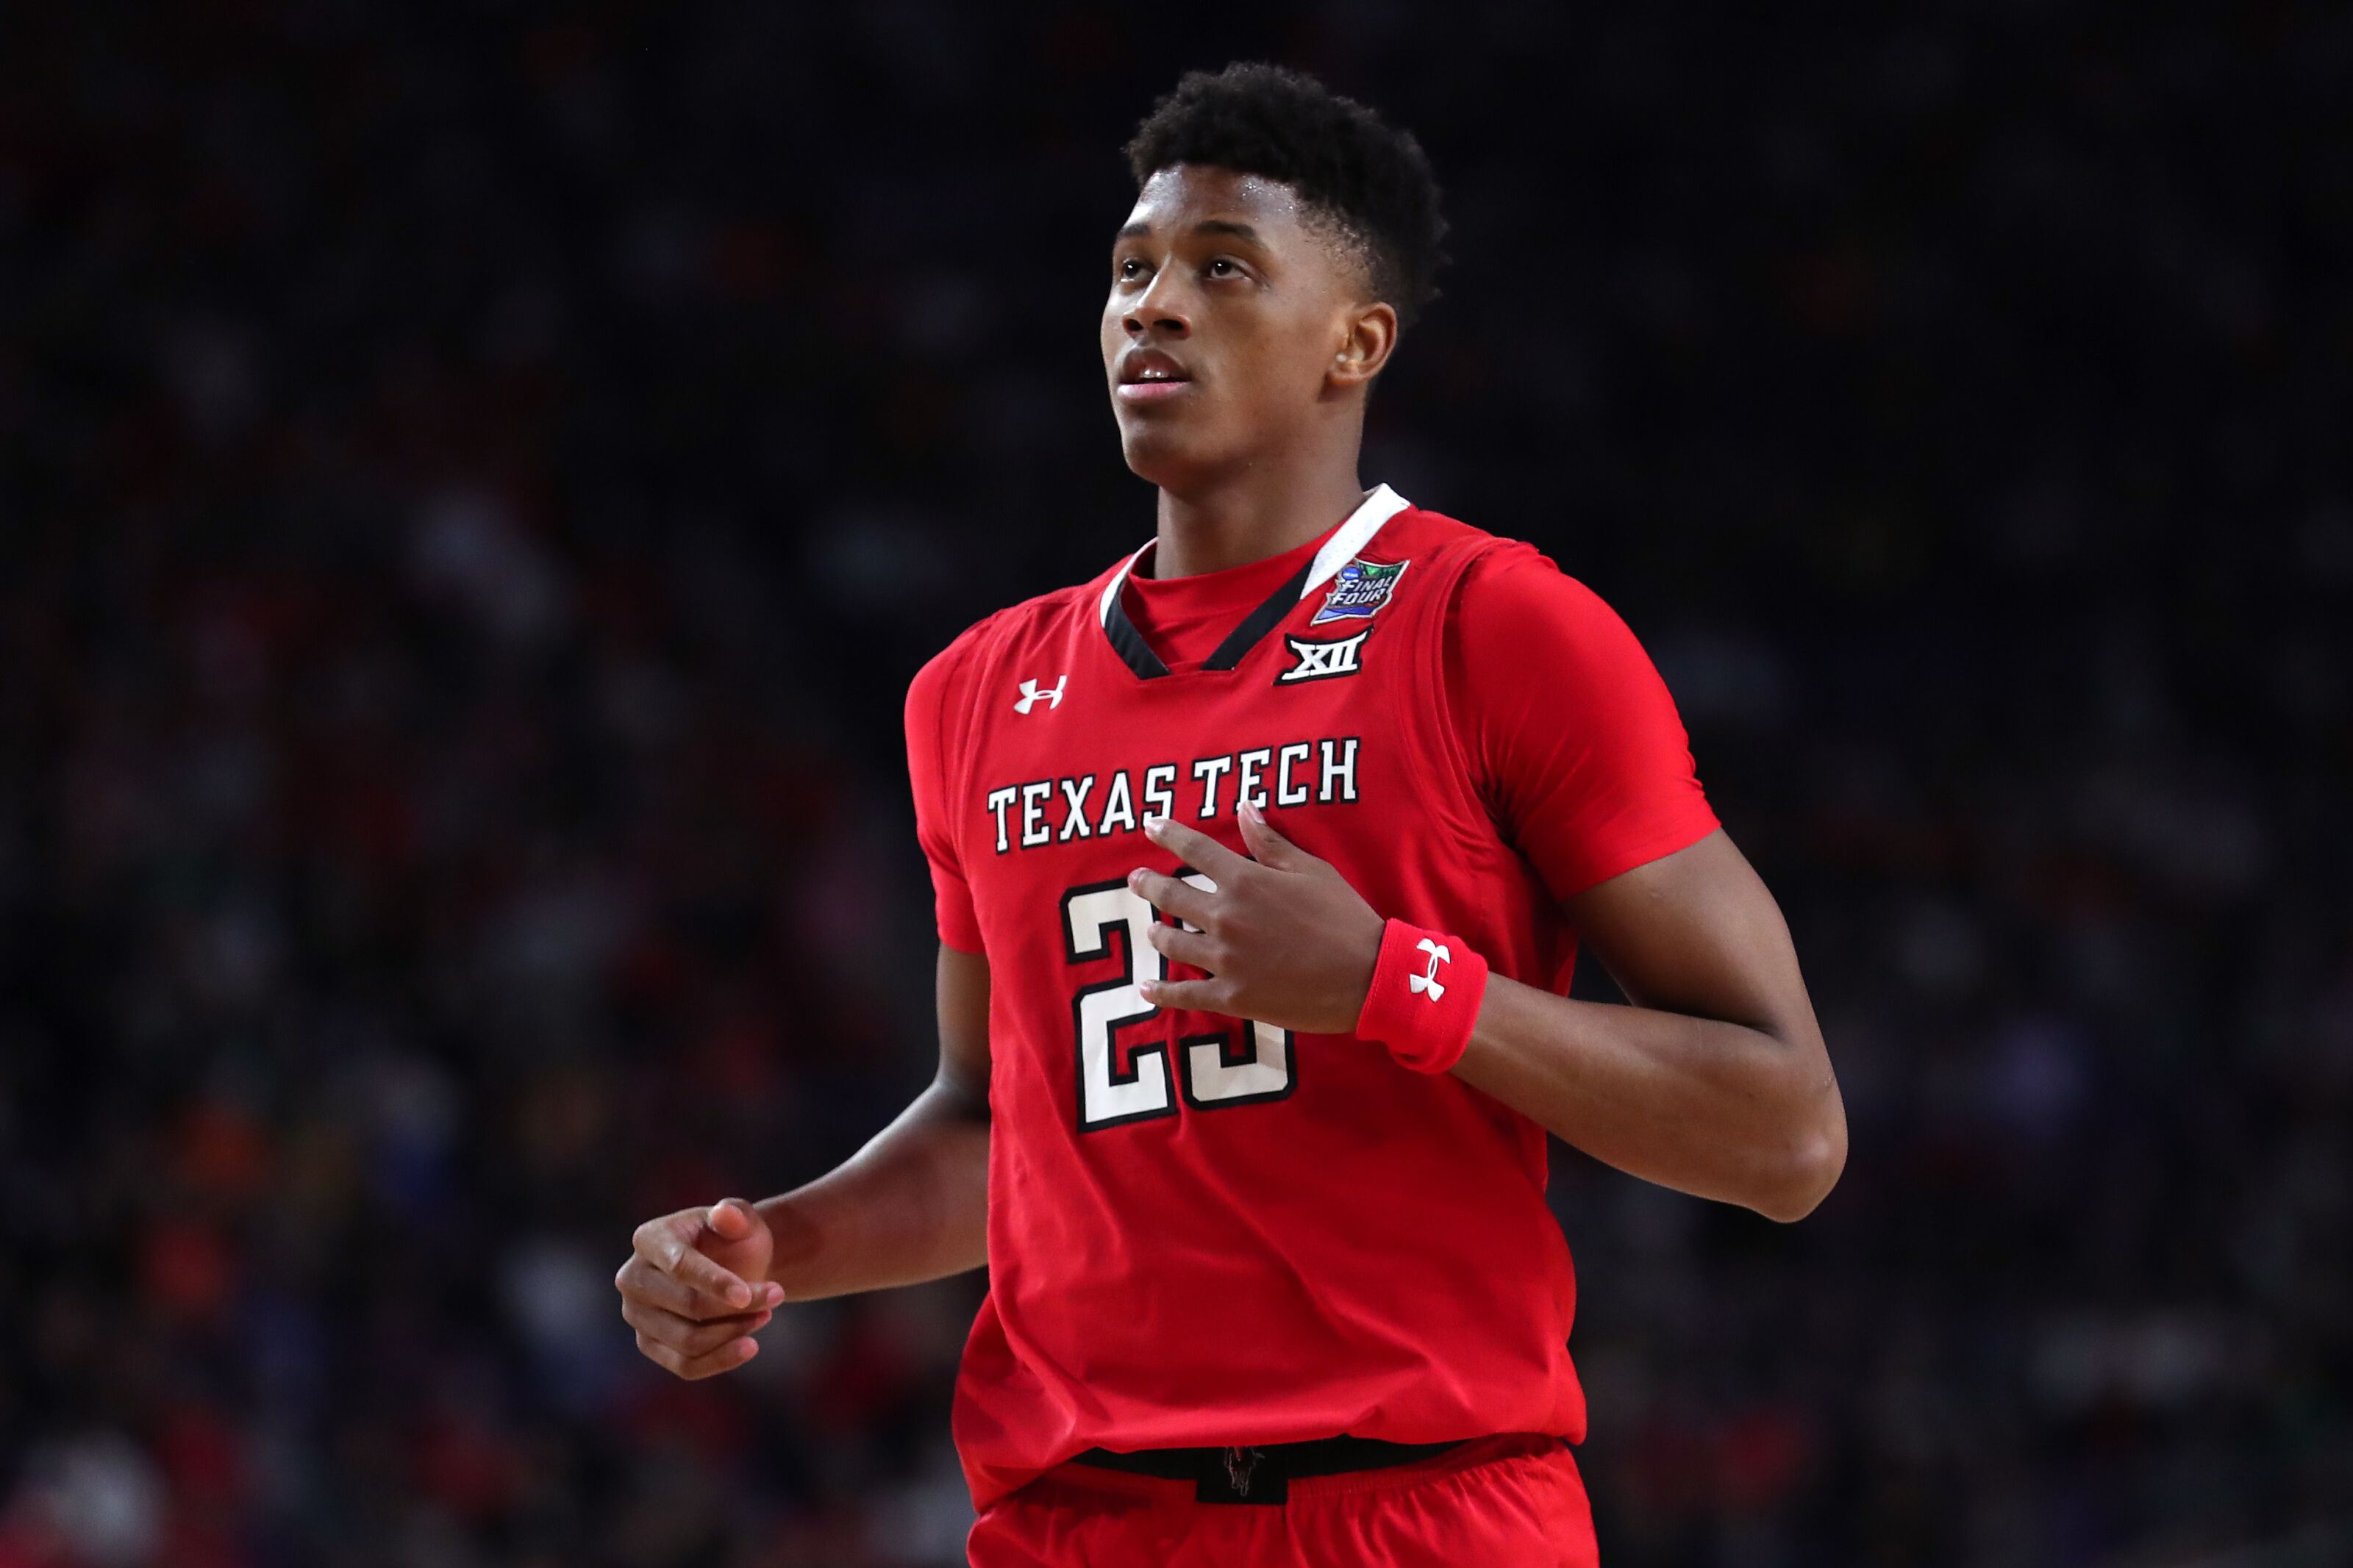 Cleveland Cavaliers: Pros and cons of drafting Jarrett Culver